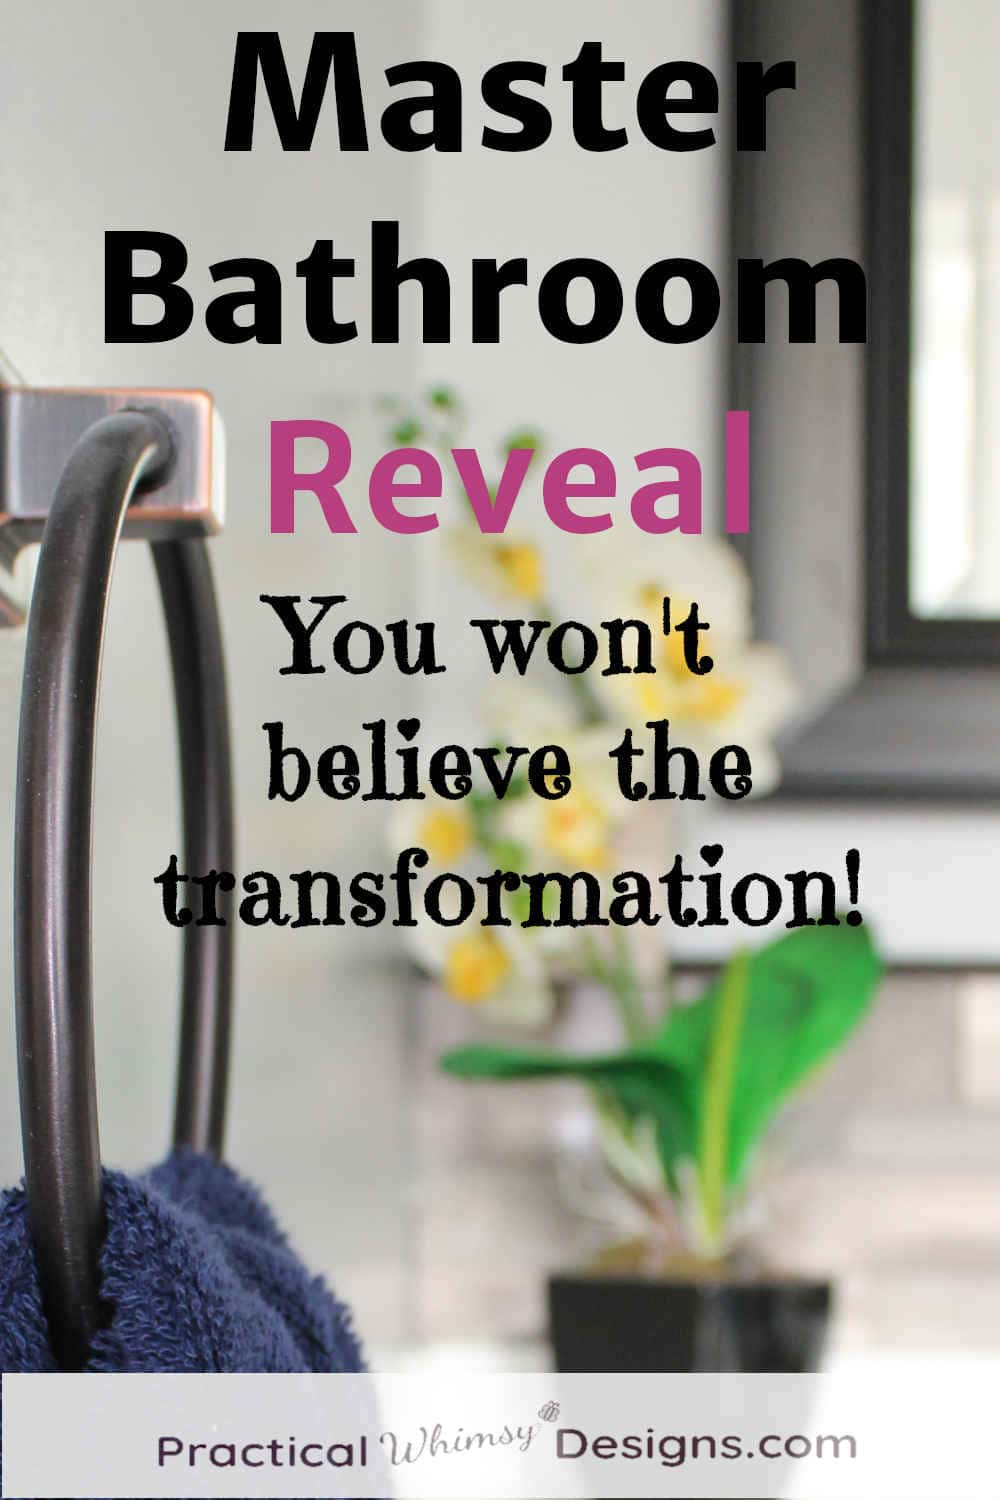 Master bathroom reveal with towel and flowers in background